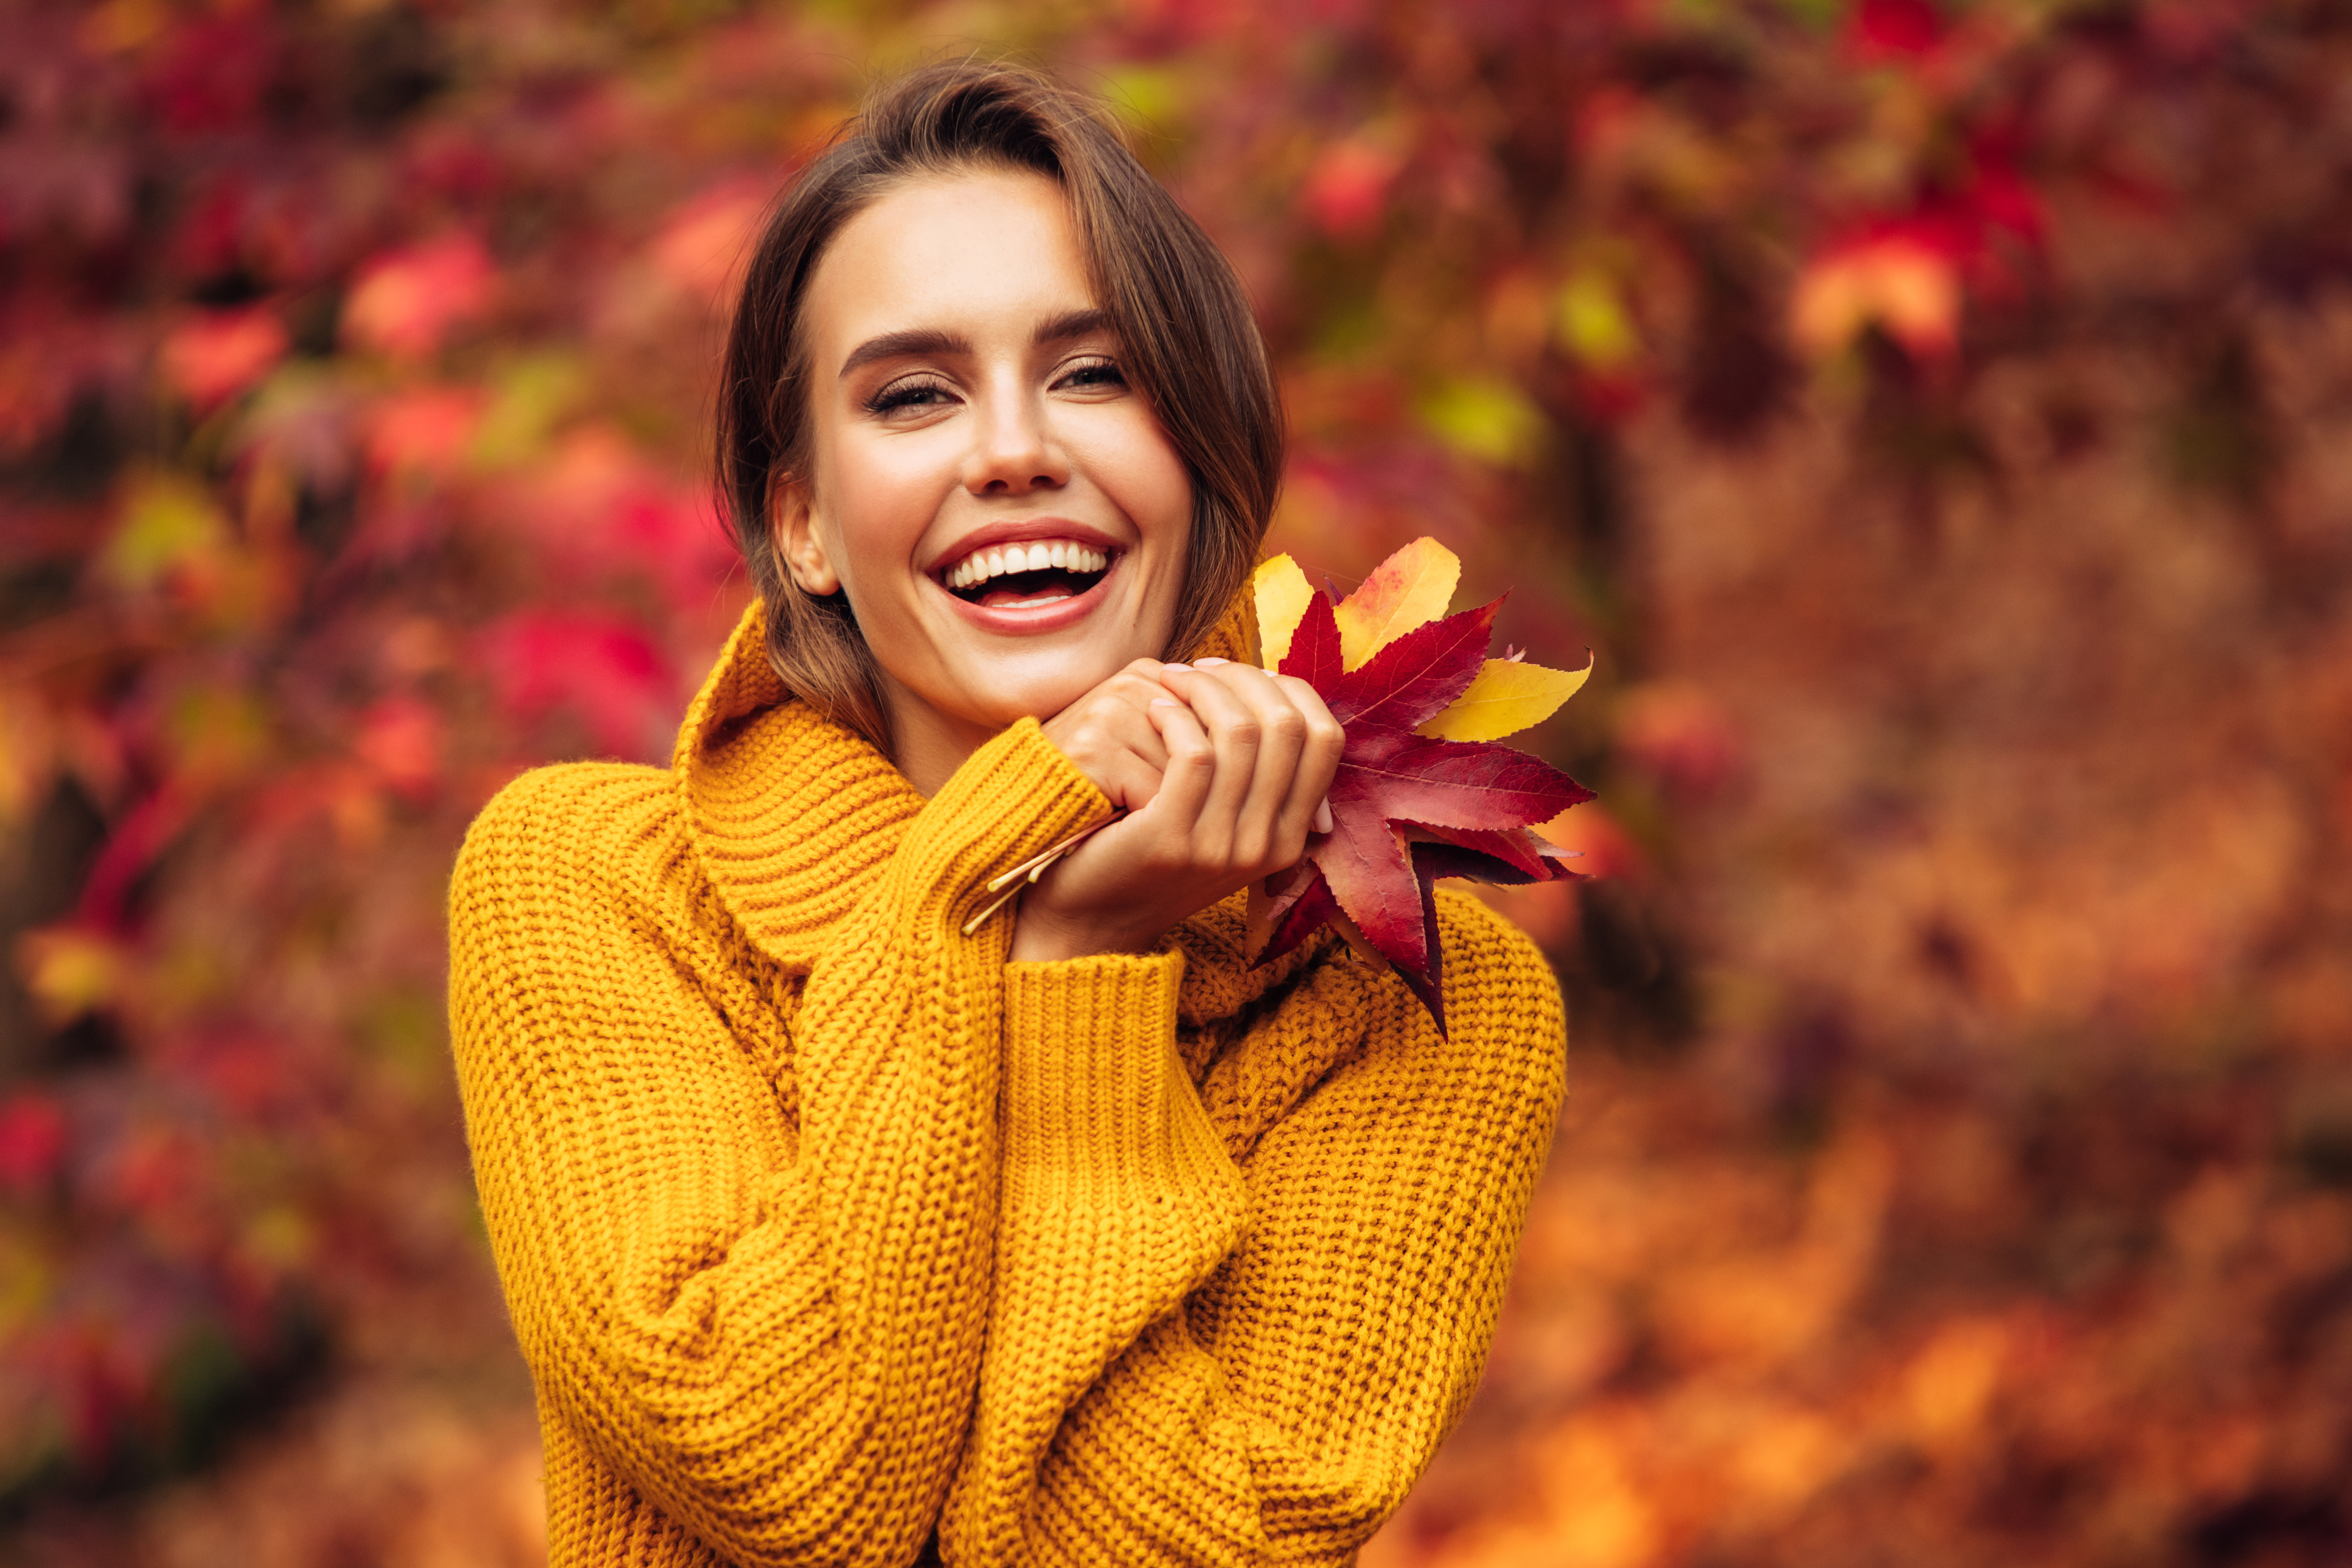 Mangat Plastic Surgery Institute and Skin Care Blog | Restore your Skin for the Autumn with Laser Resurfacing